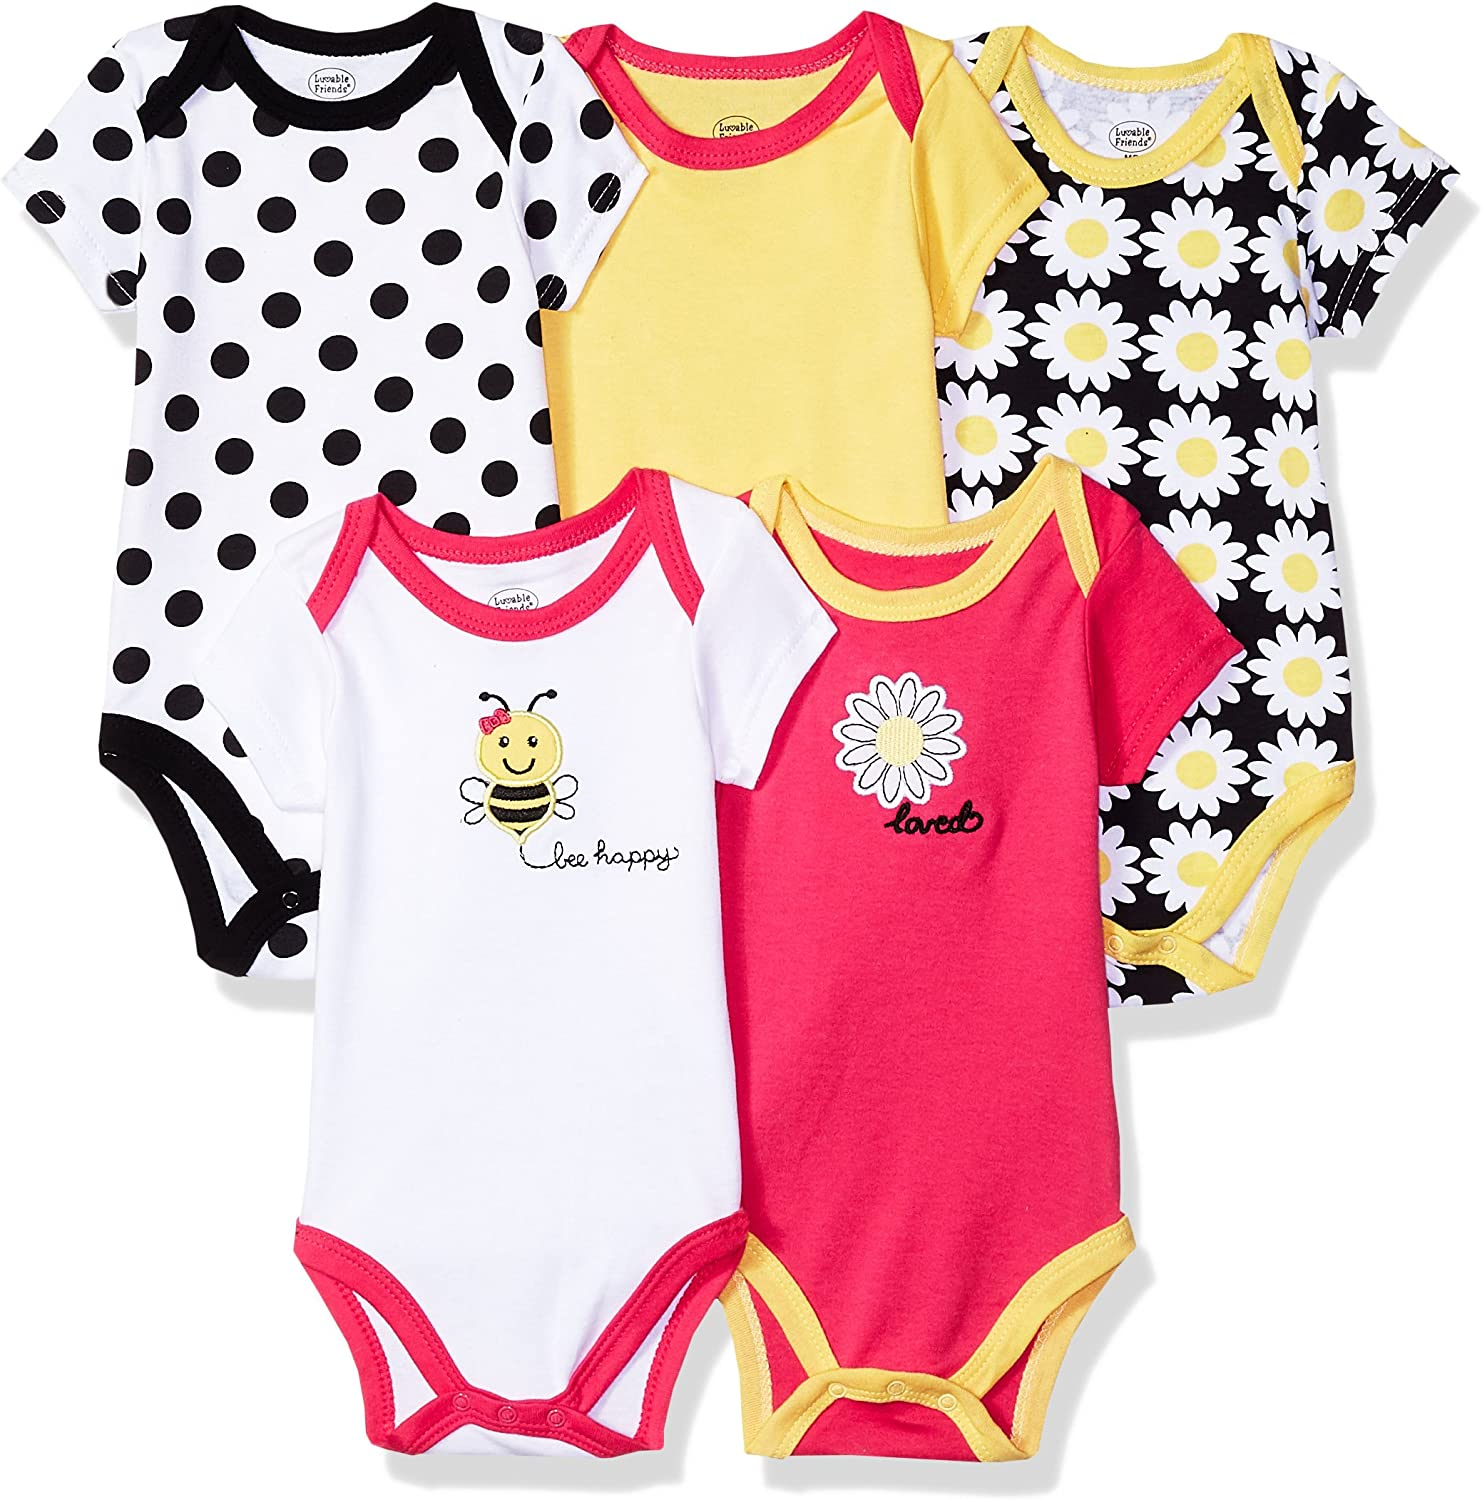 Luvable Friends Set of 5 Baby One-Pieces Bodysuits 0-3; 3-6; 6-9